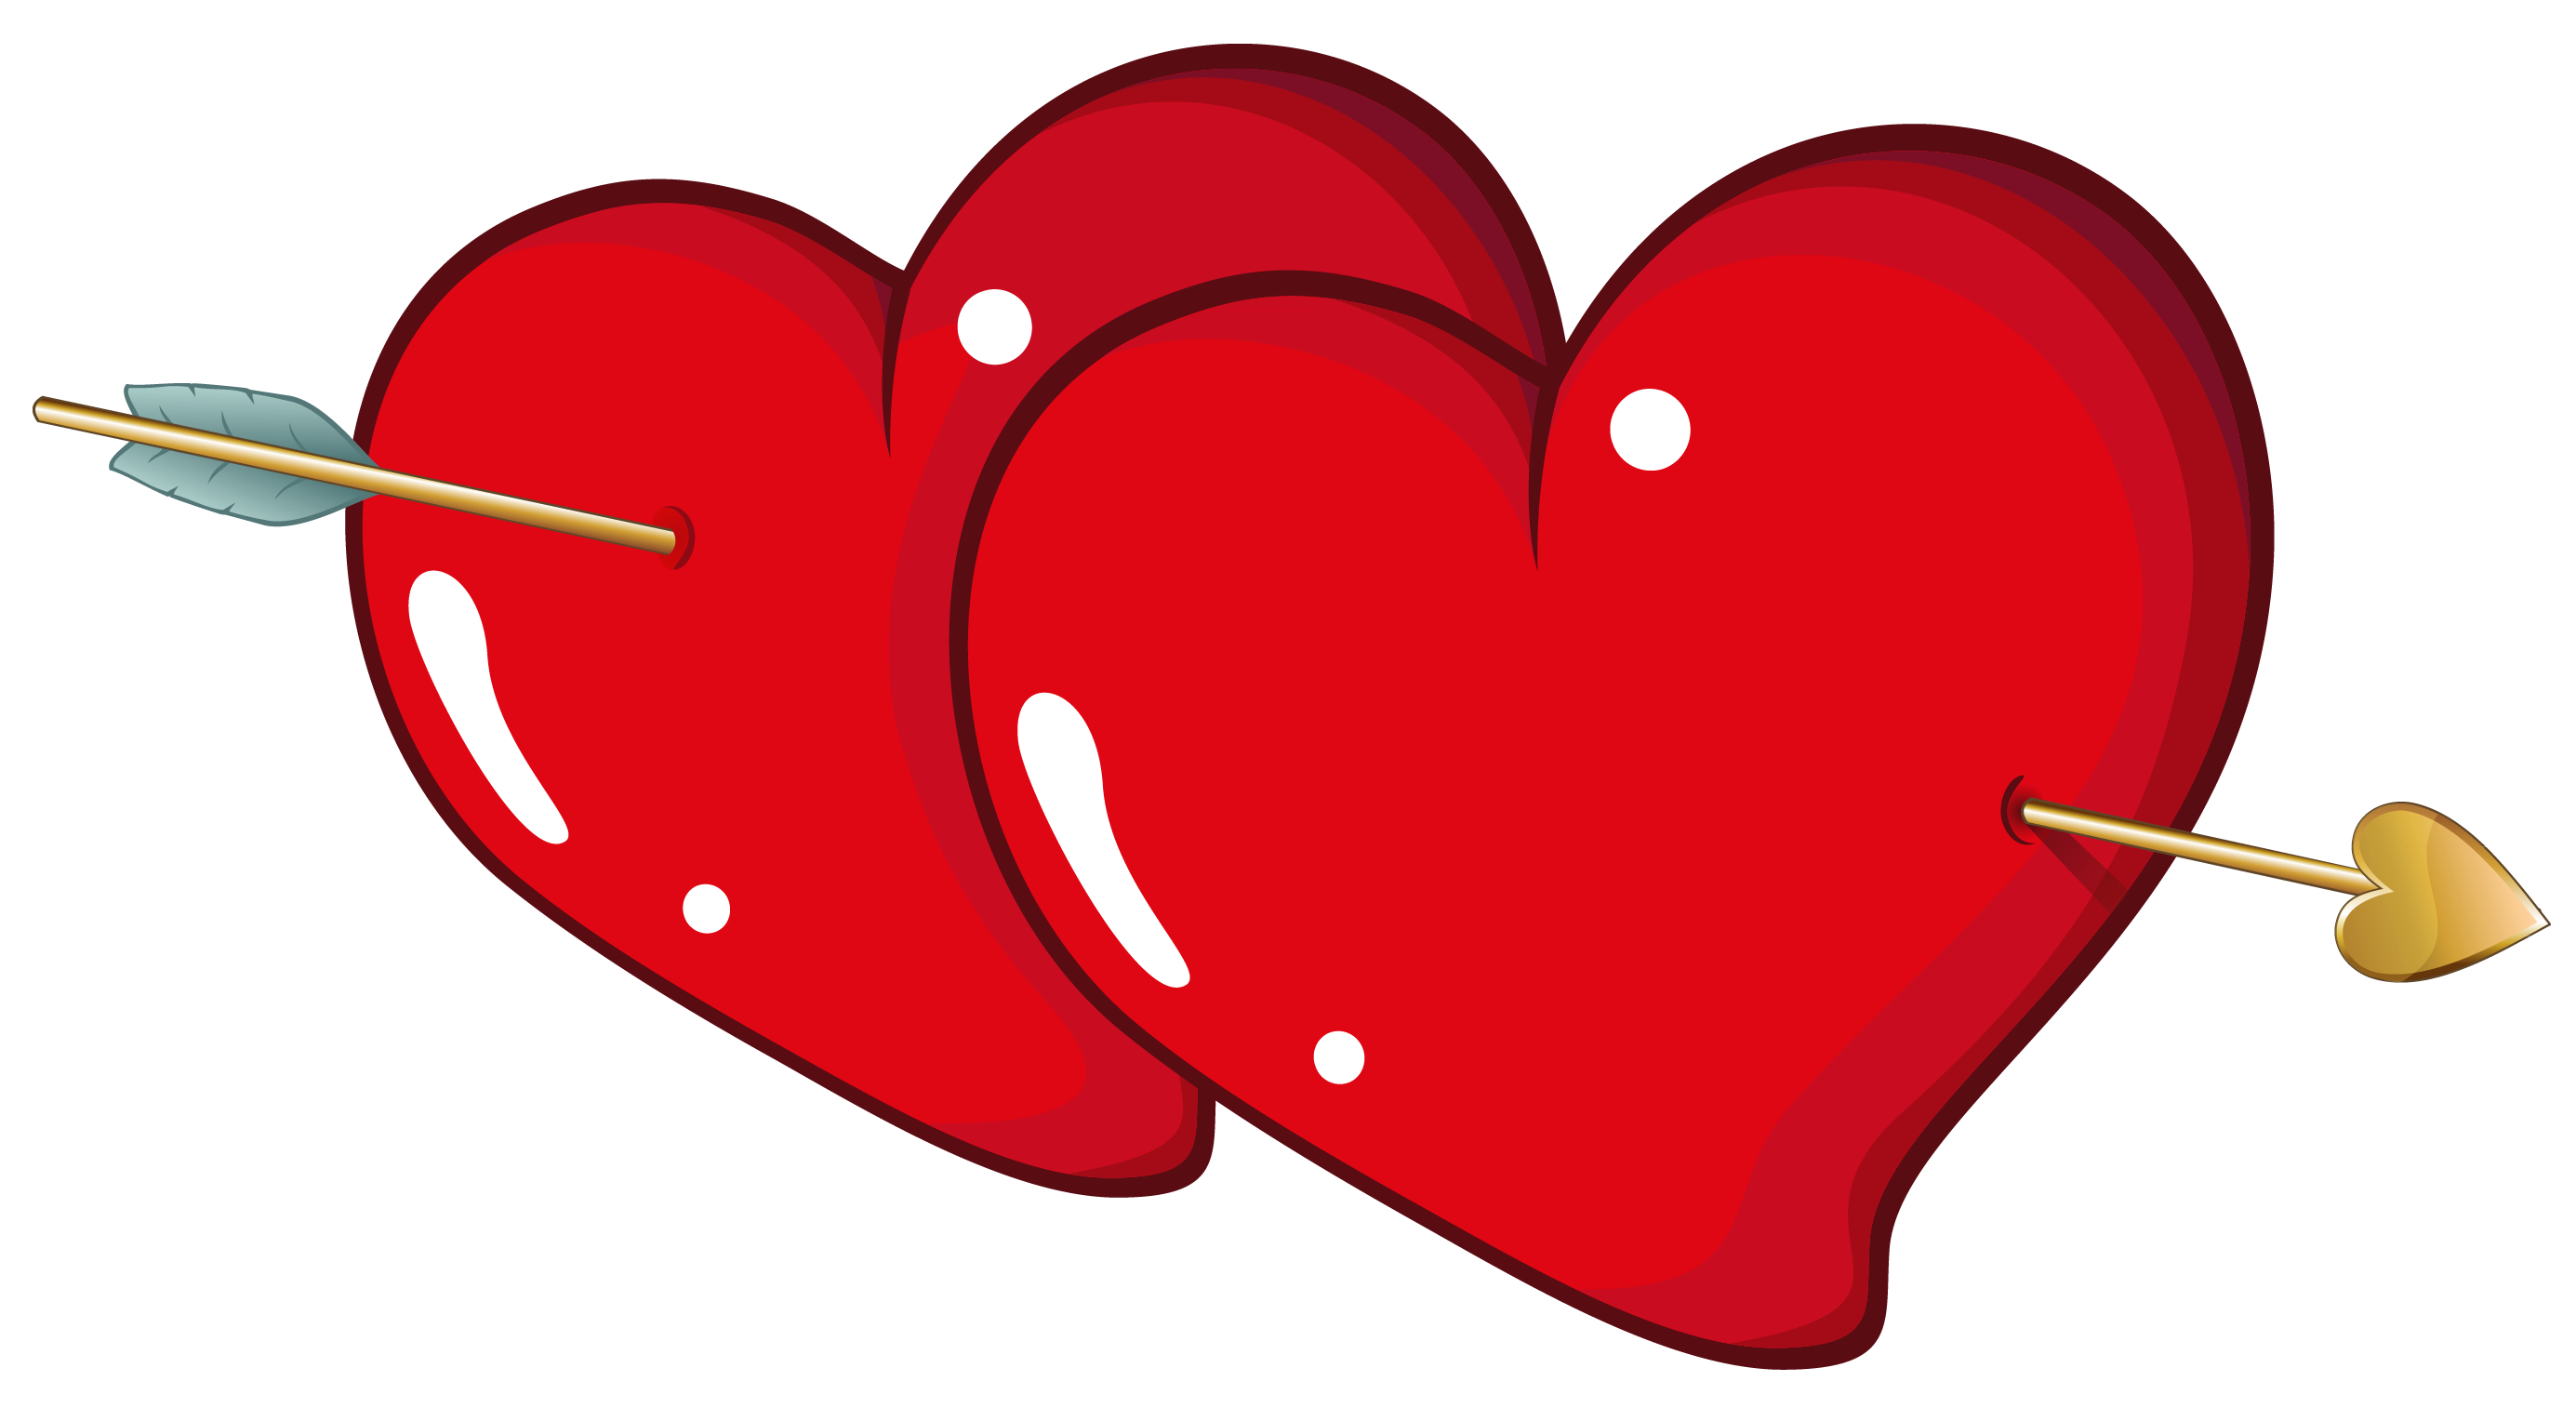 With arrow clipart picture. Valentine hearts png